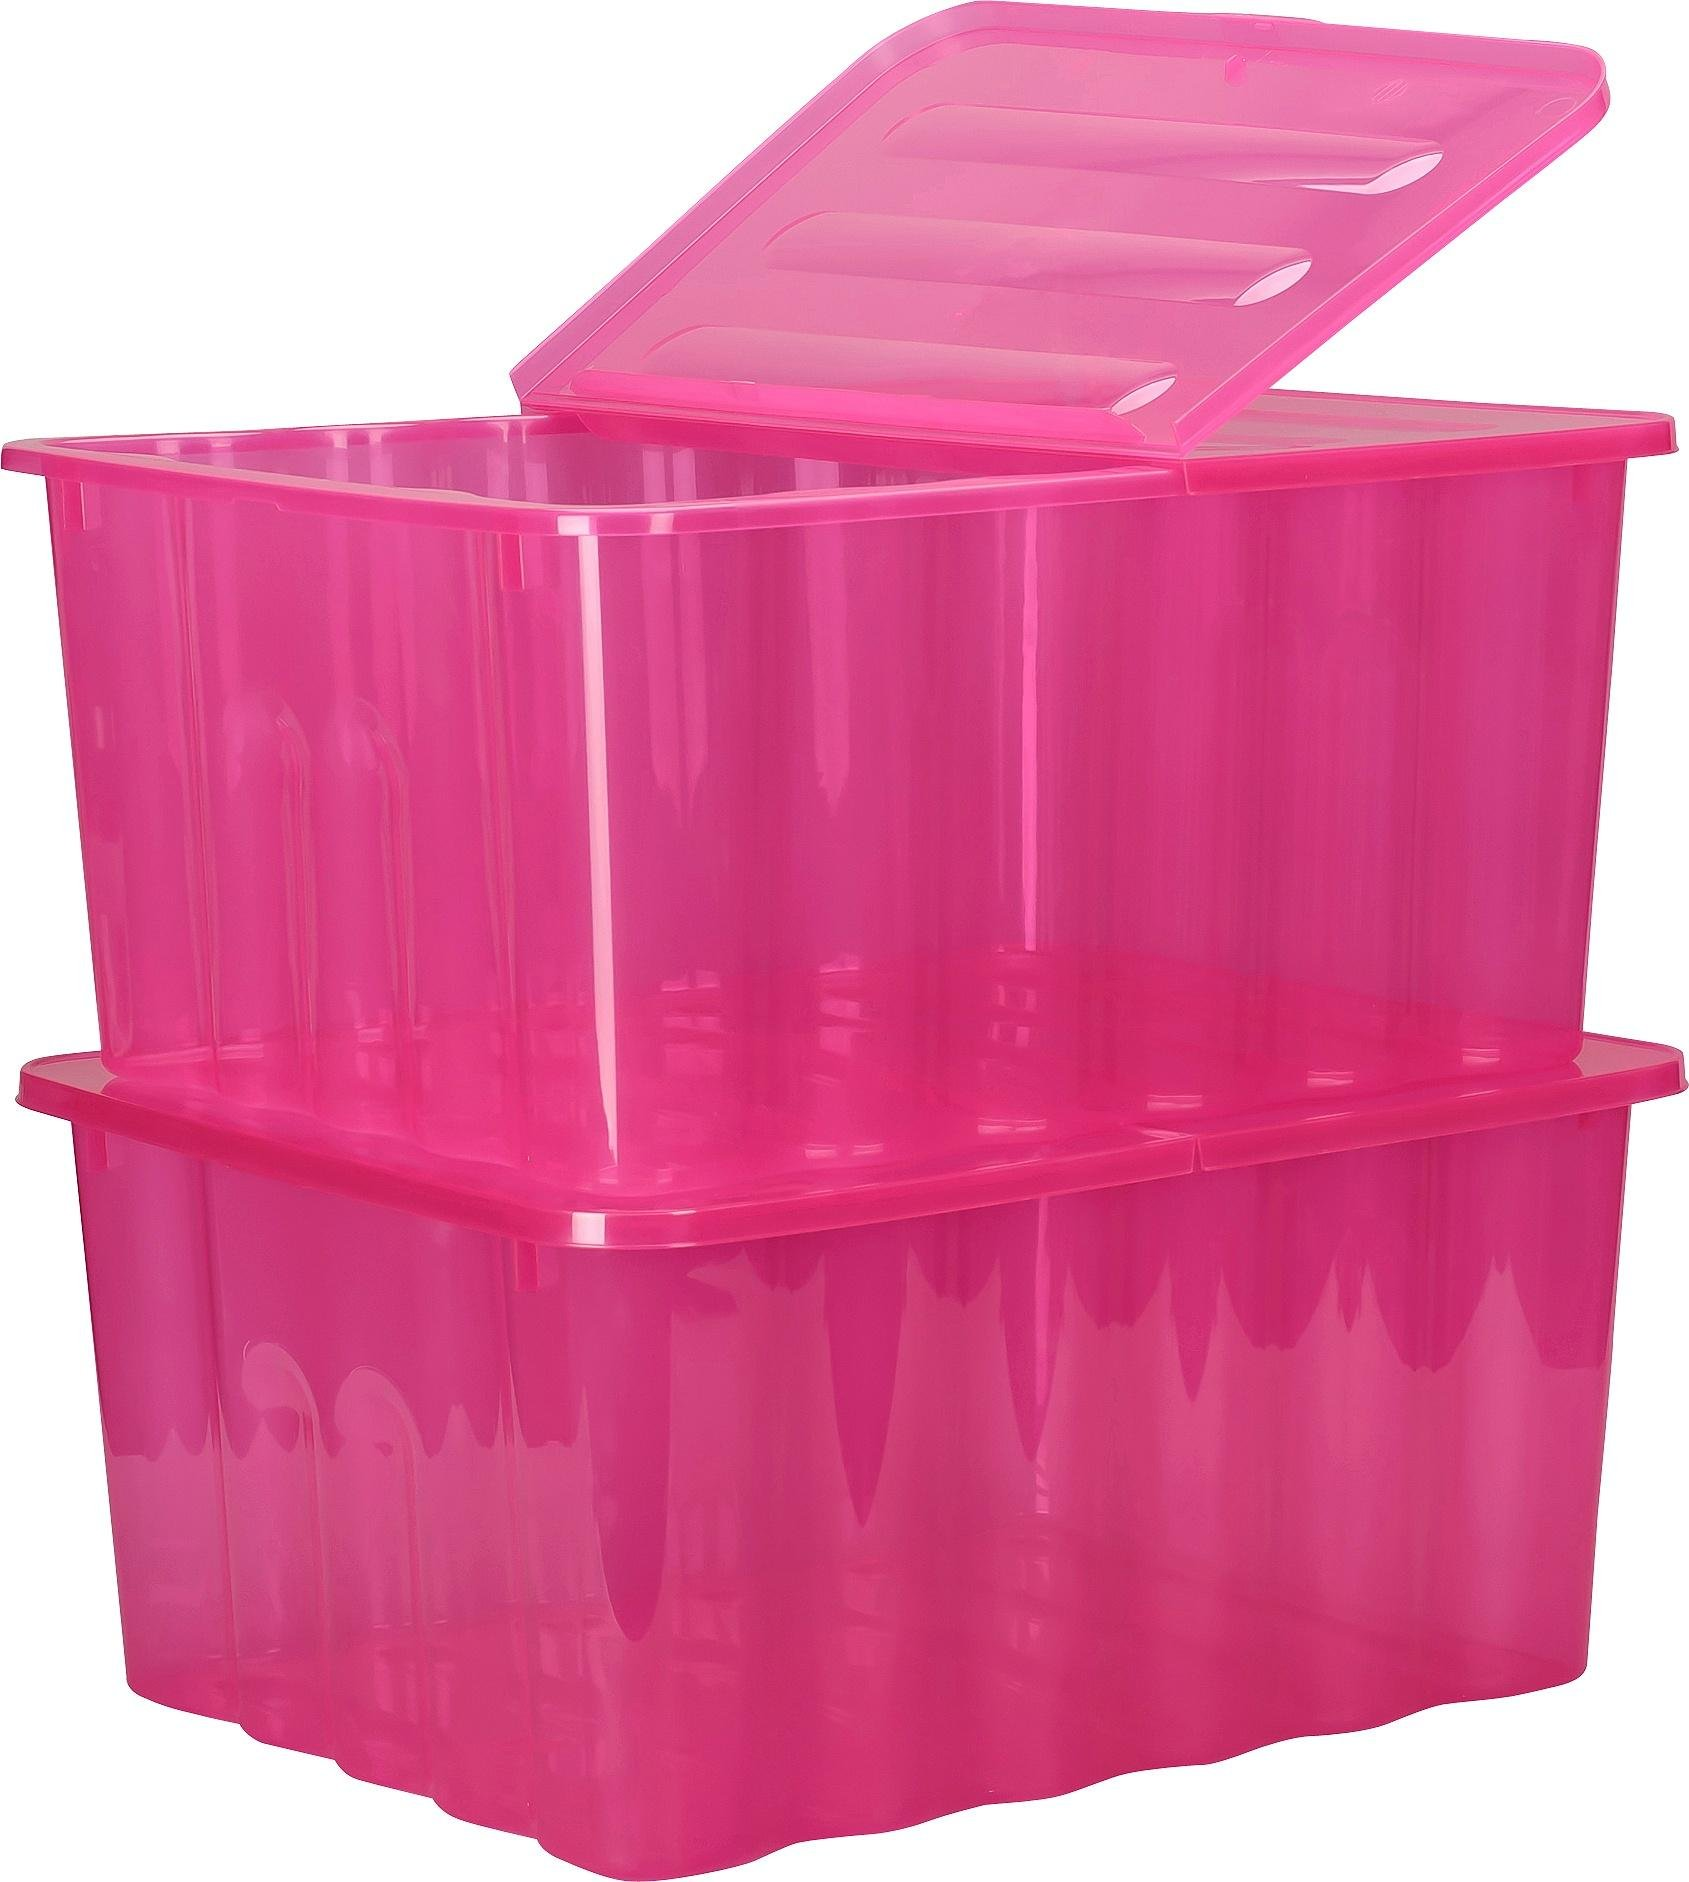 Buy Argos Home Pair of Plastic Storage Boxes Pink Plastic